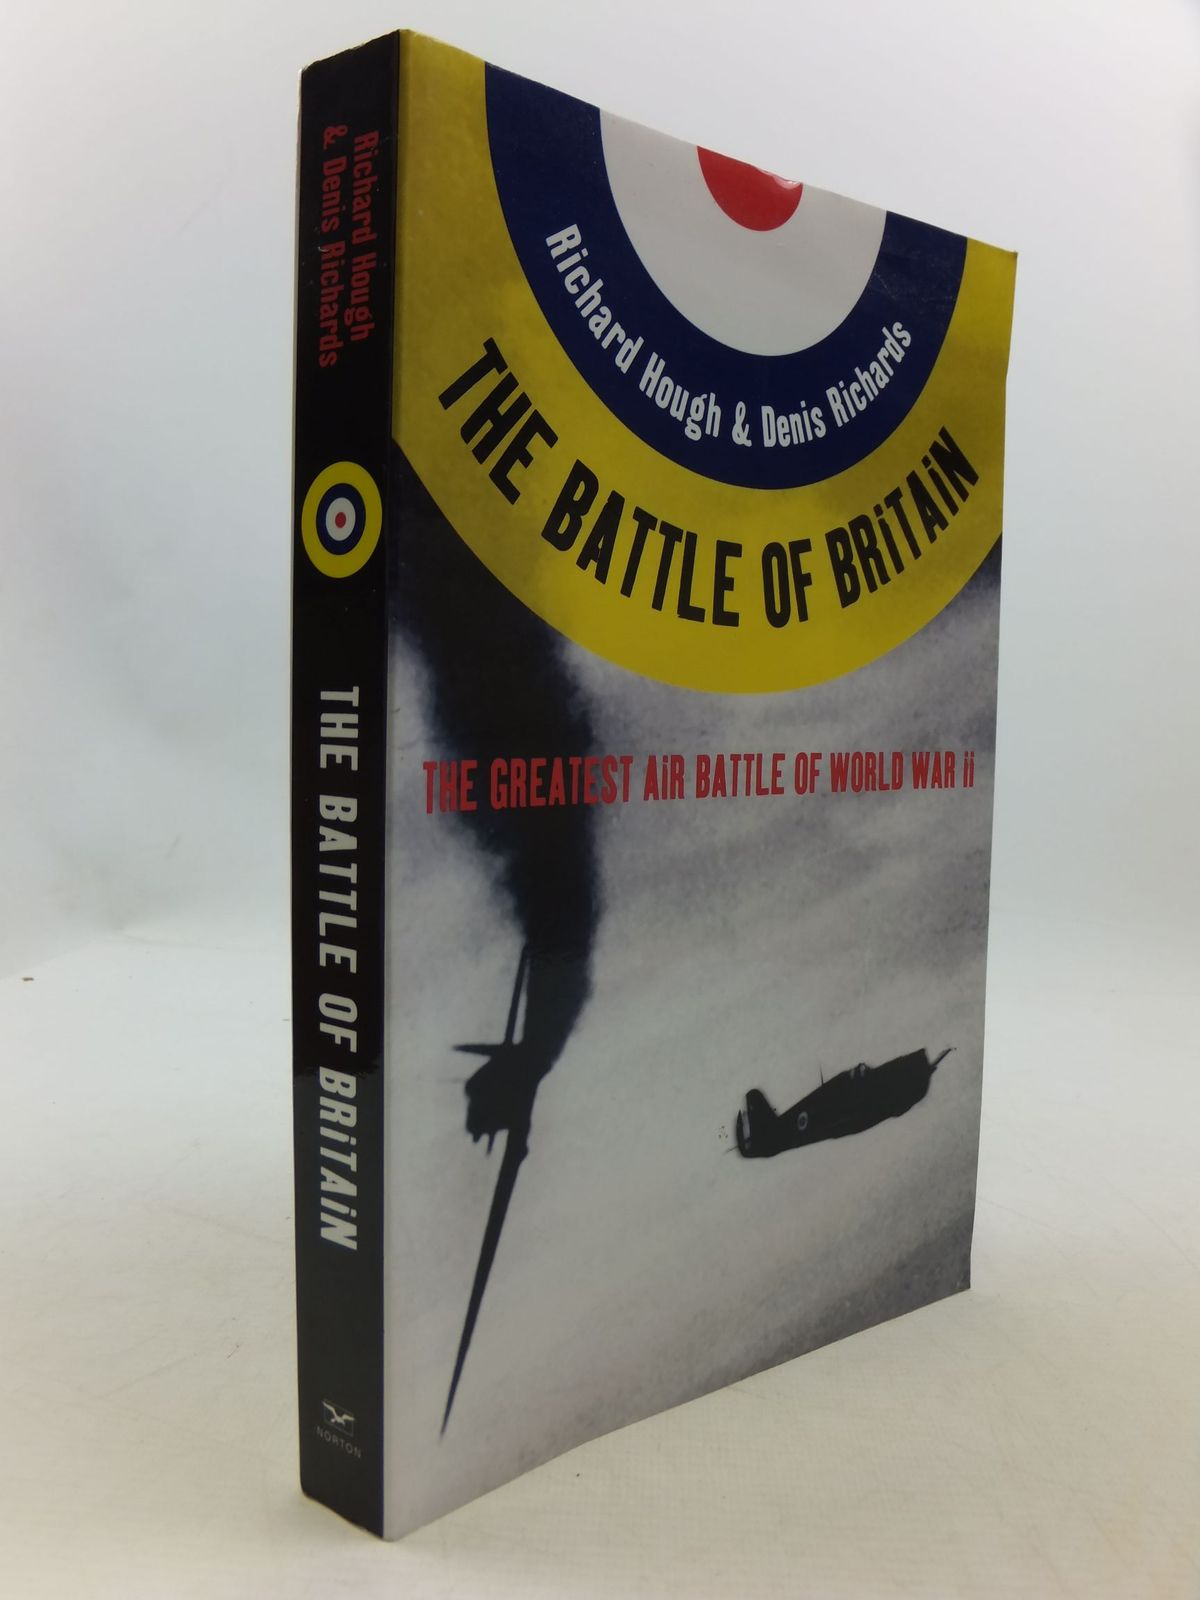 Photo of THE BATTLE OF BRITAIN THE GREATEST AIR BATTLE OF WORLD WAR II written by Hough, Richard Richards, Denis published by W.W. Norton & Company Inc. (STOCK CODE: 1708494)  for sale by Stella & Rose's Books